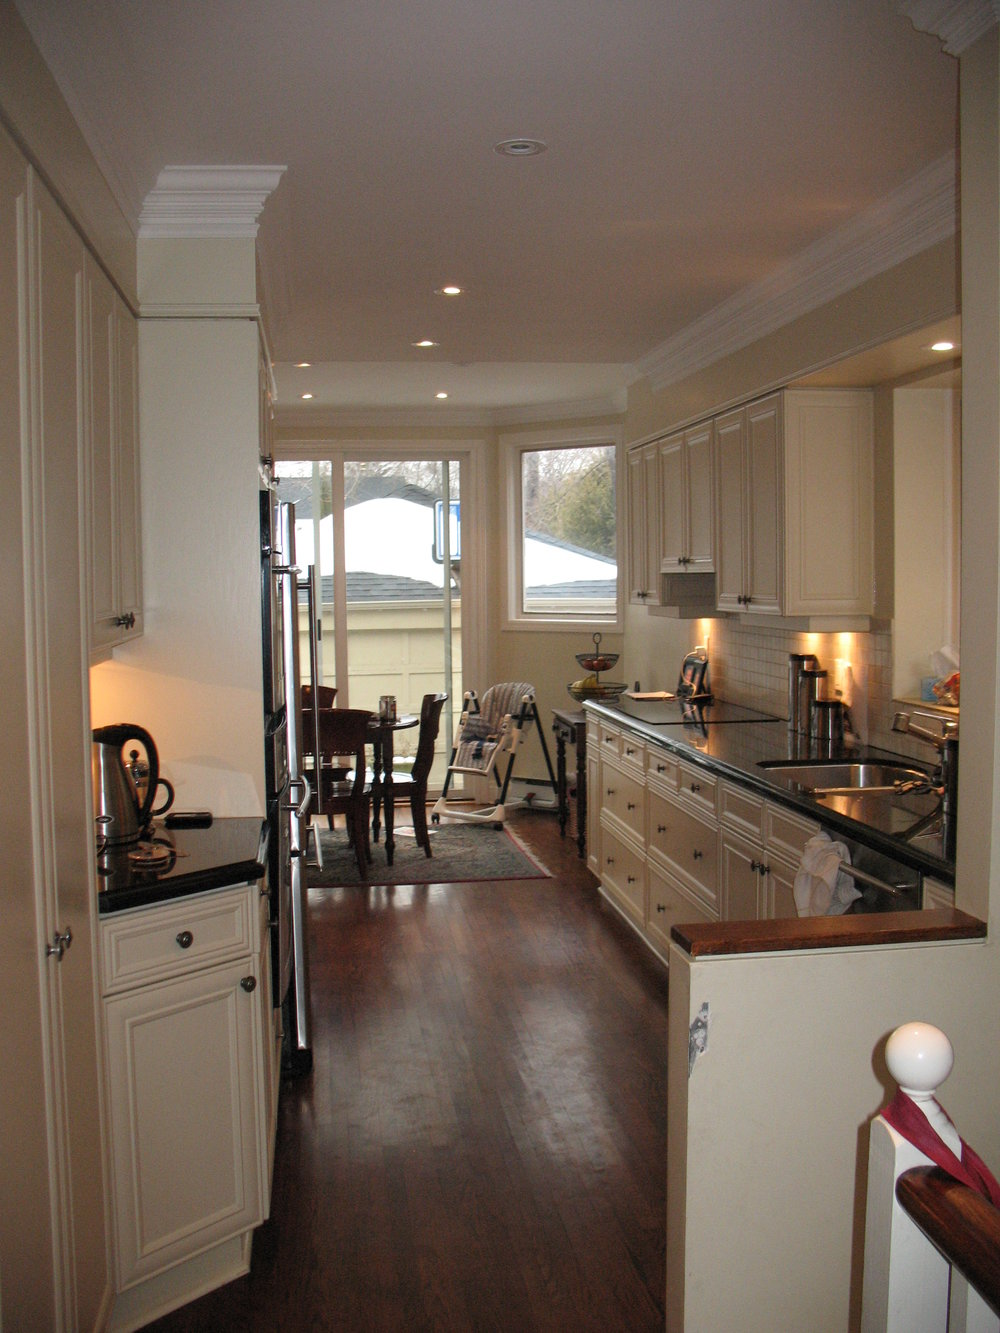 Before-Galley Kitchen.JPG